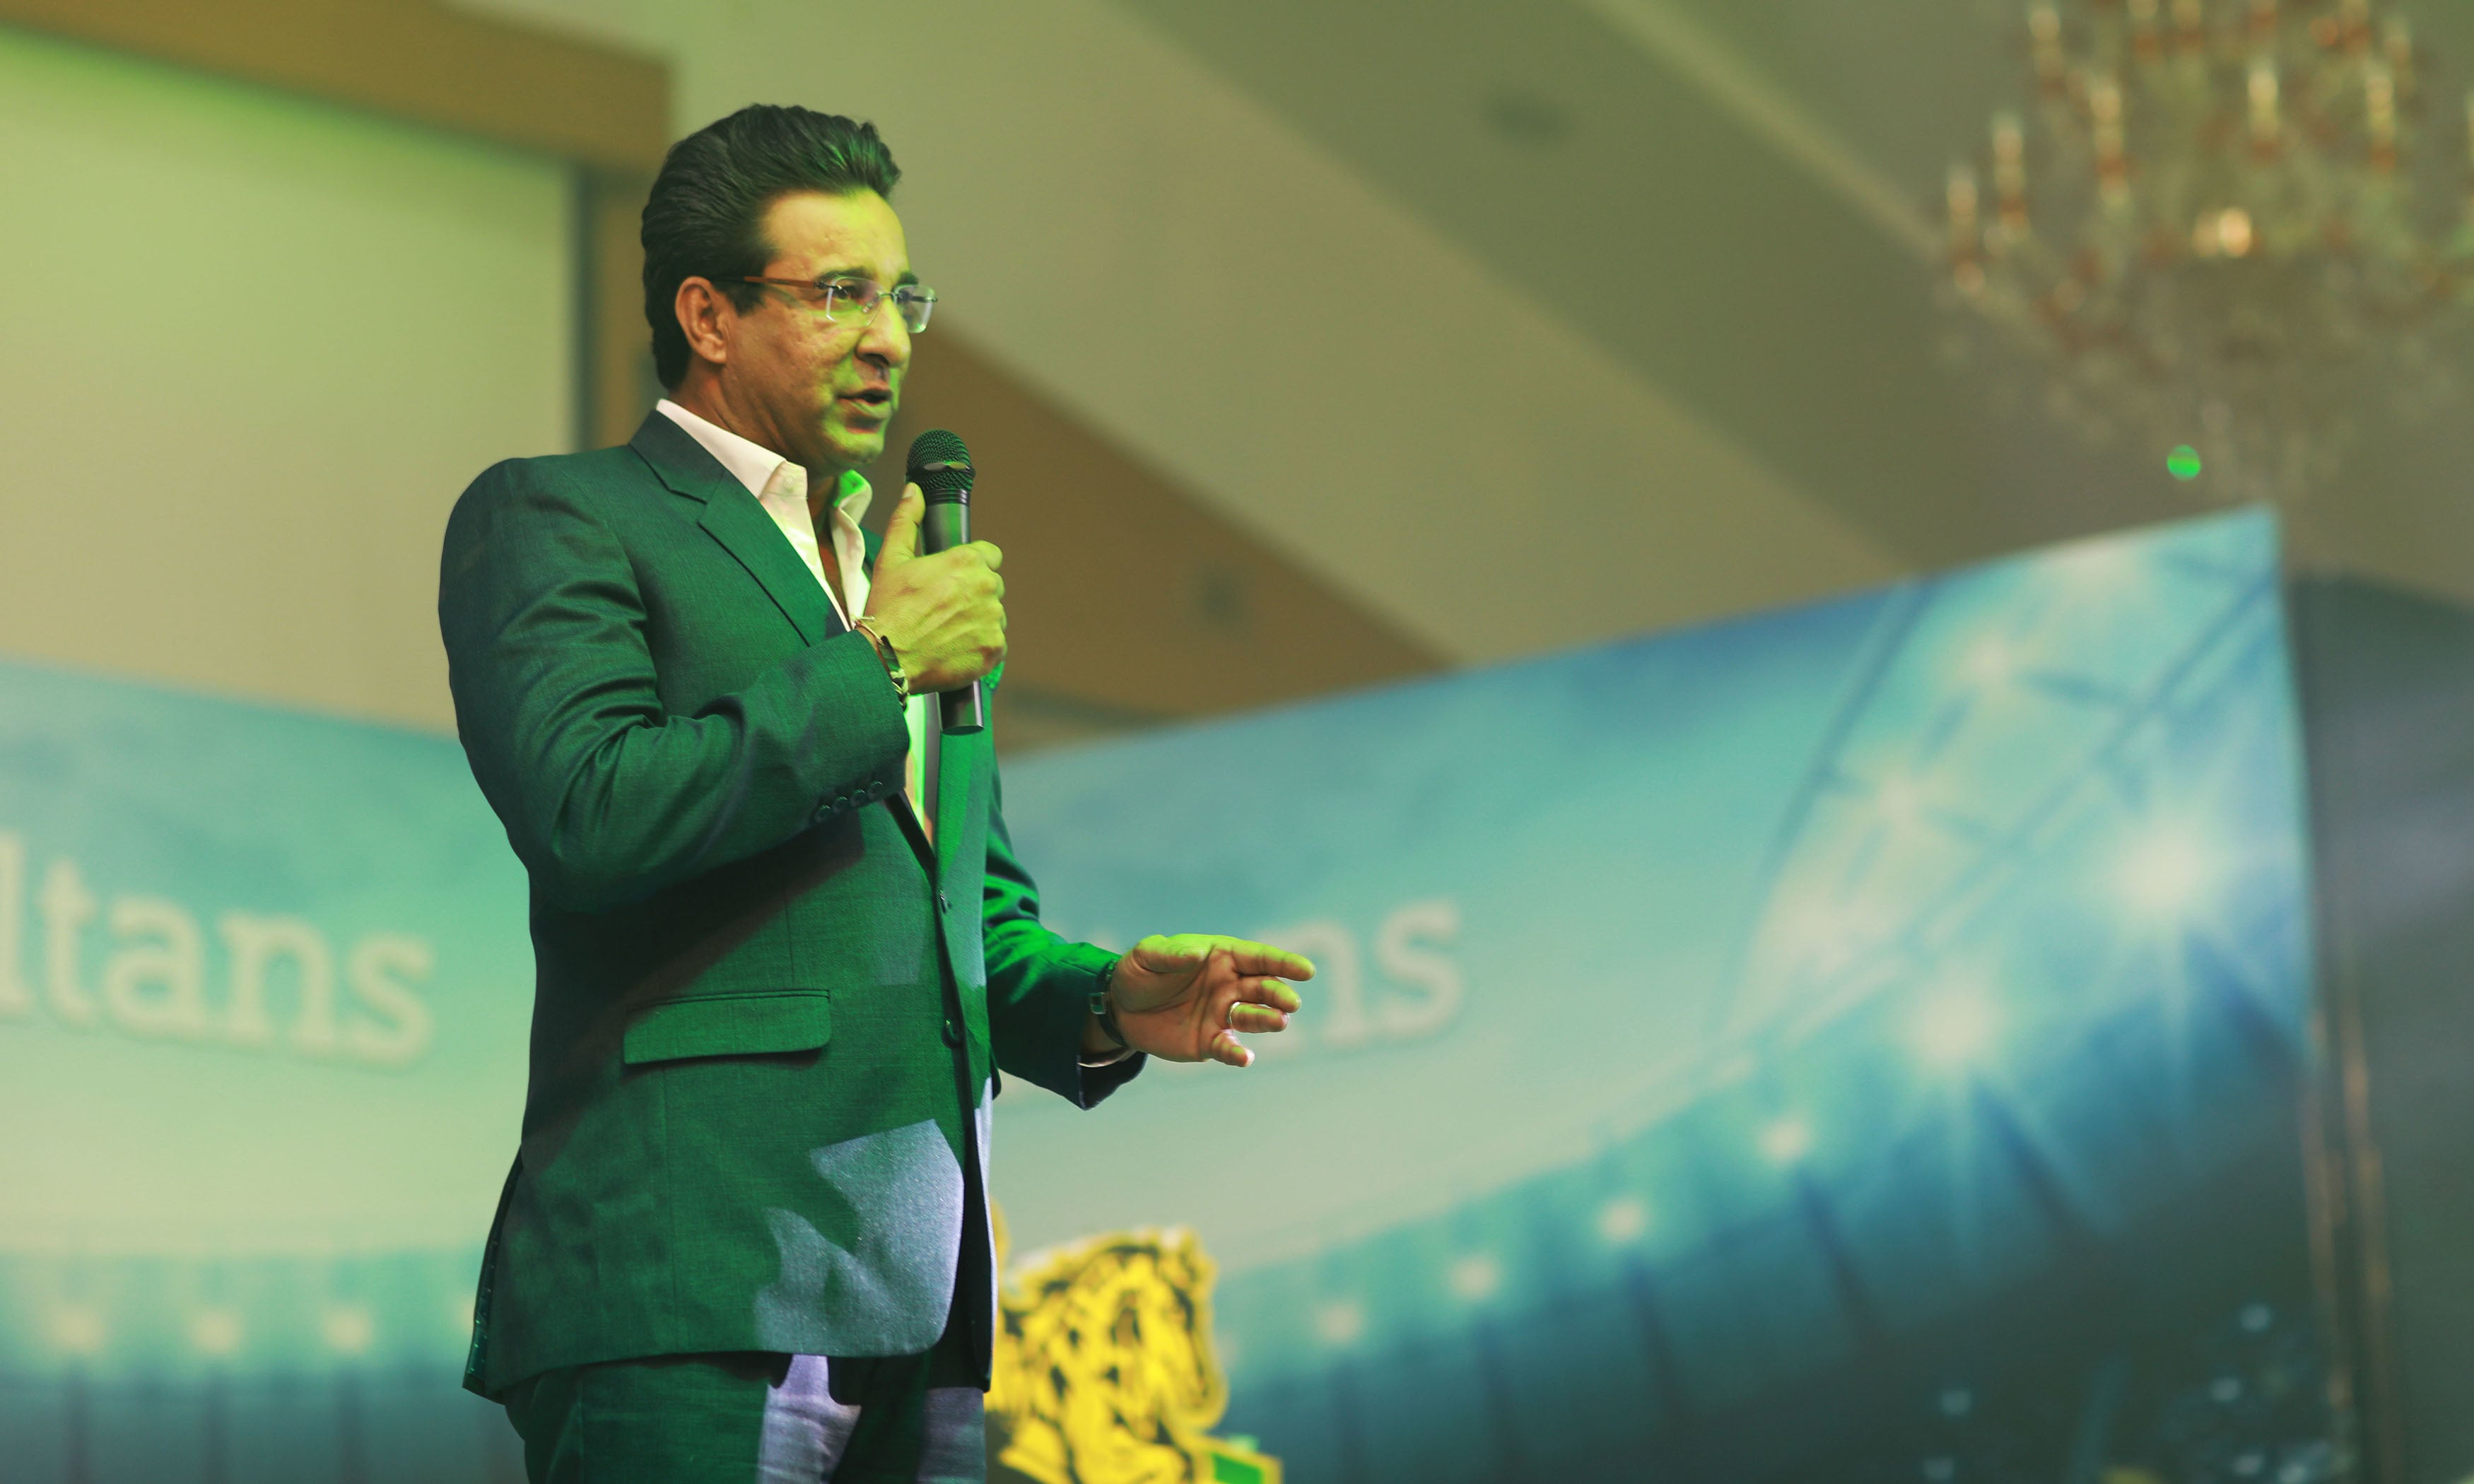 Multan Sultans' Director of Cricket Operations Wasim Akram speaks at logo launch. —Photo courtesy Multan Sultans